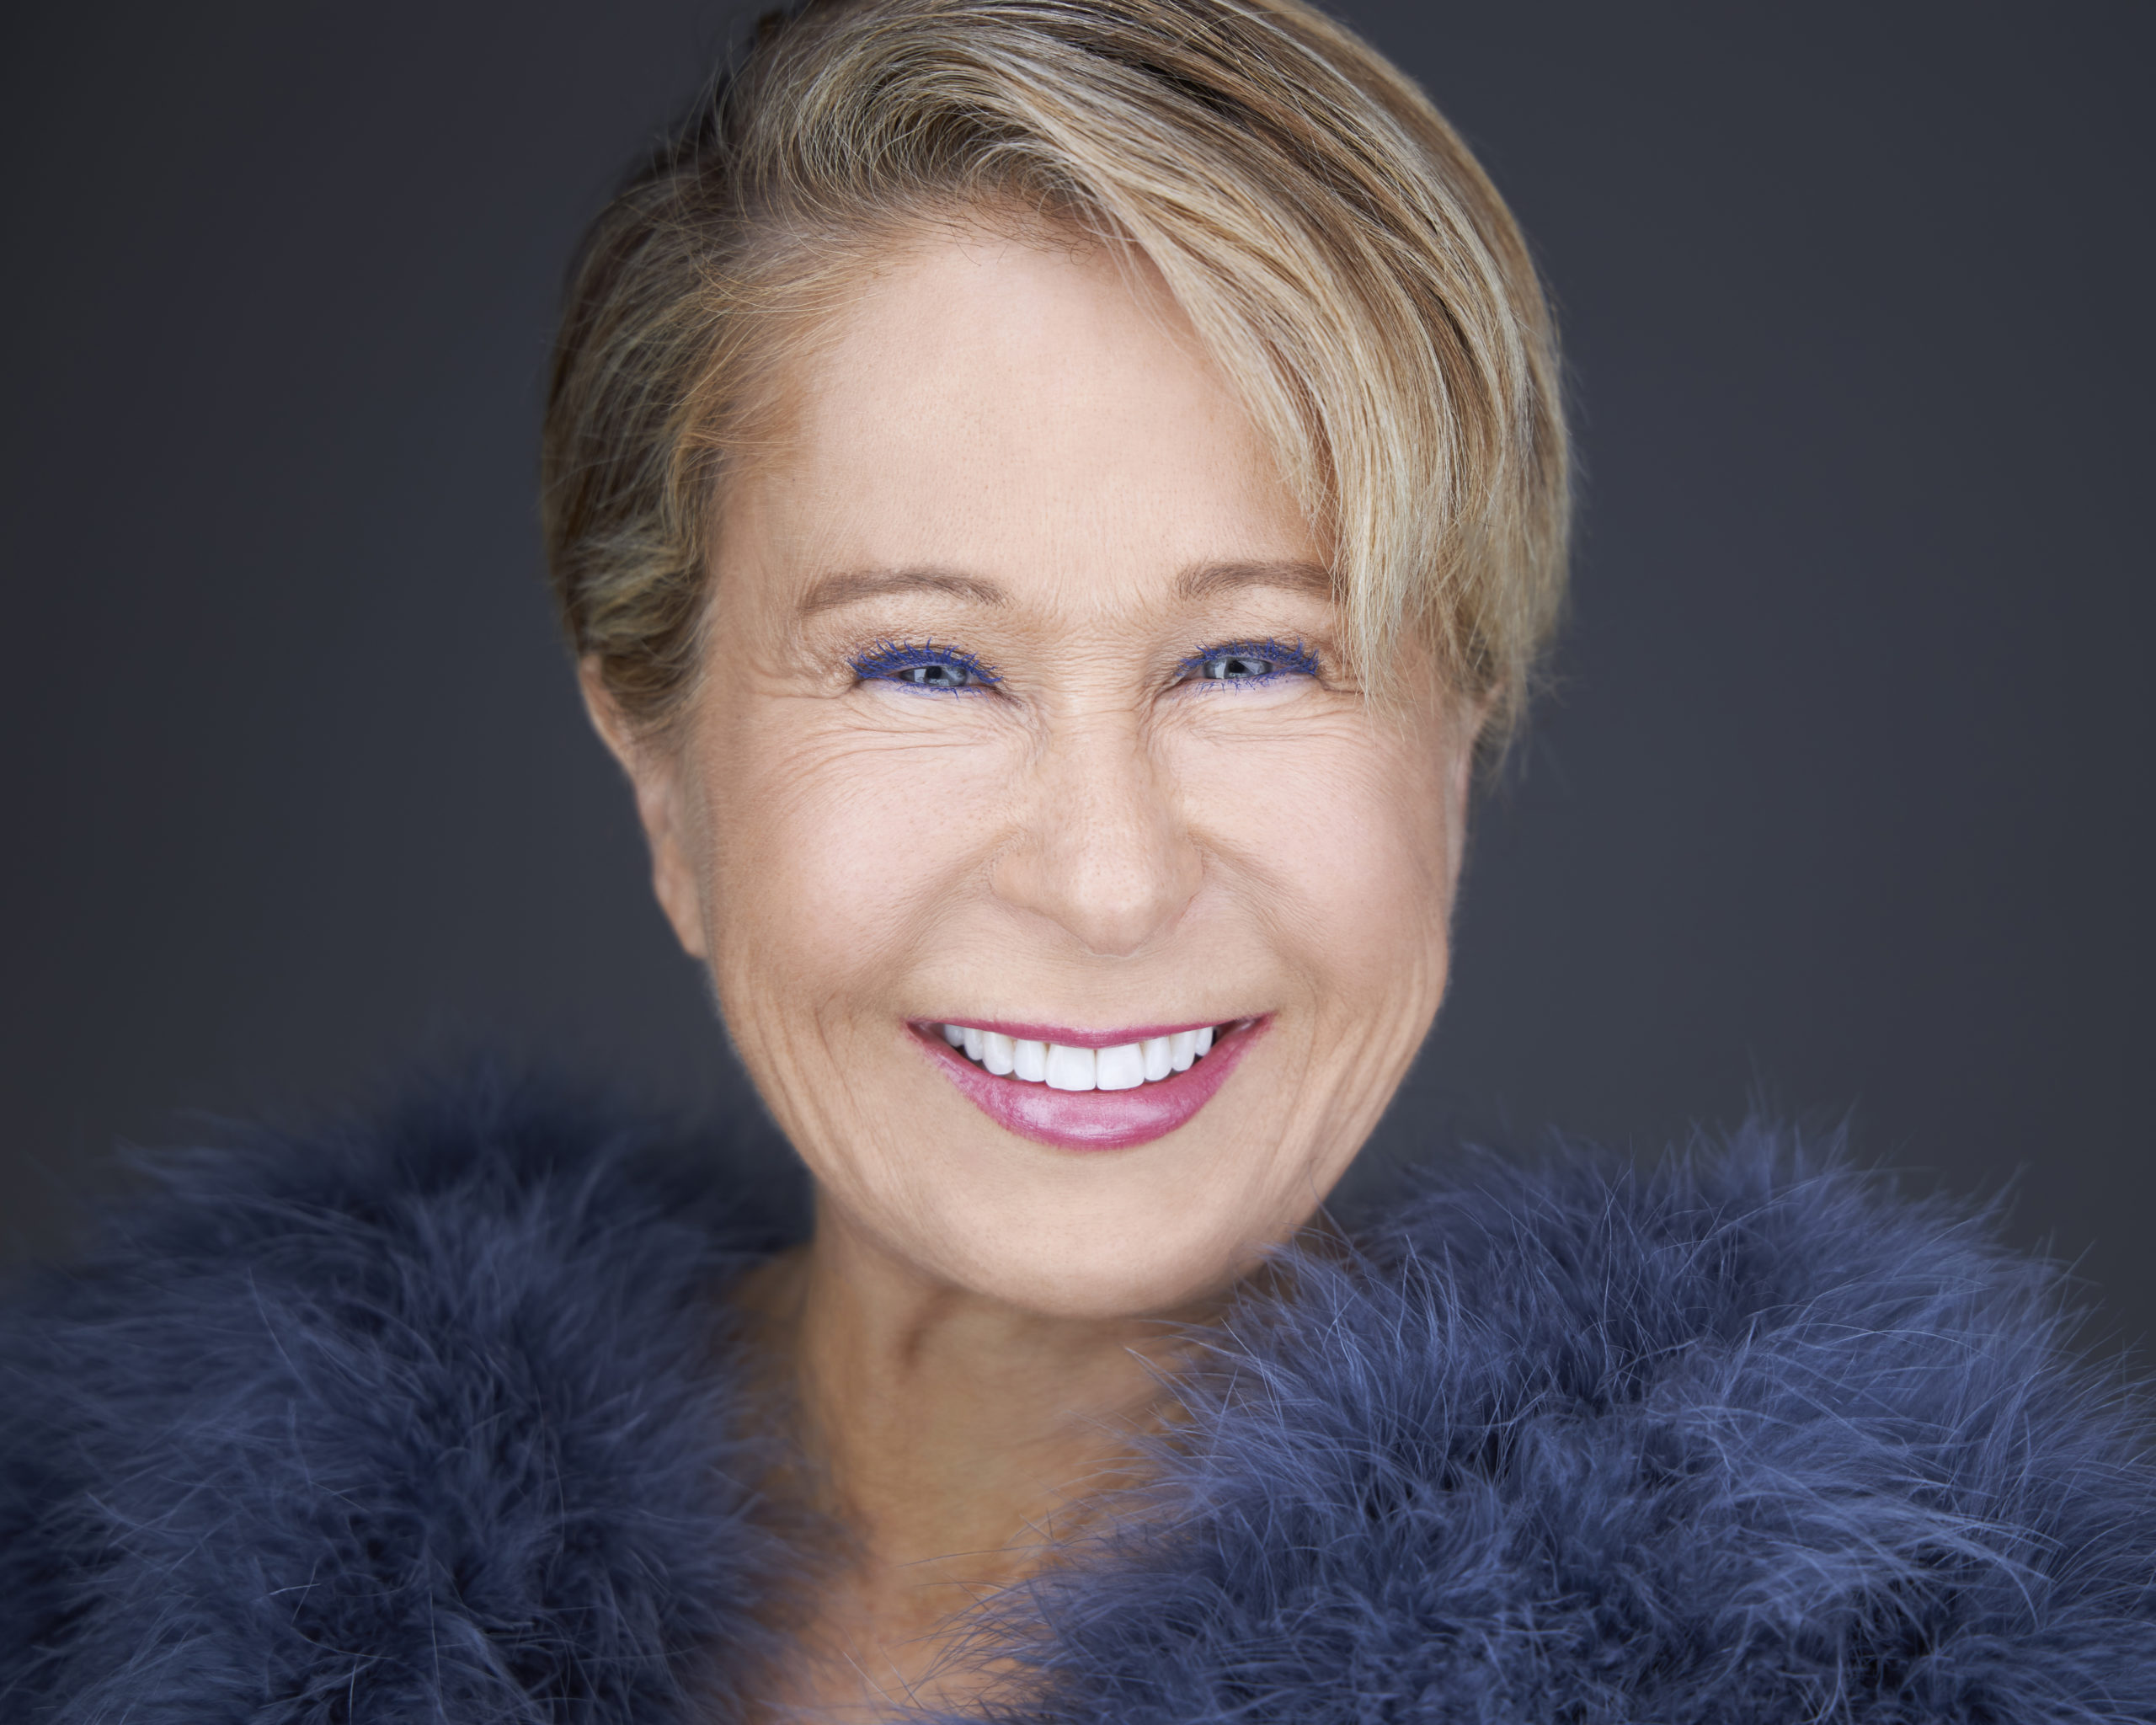 Yeardley Smith has voiced Lisa Simpson for 32 years. Now, she's finding success in podcasting and on Instagram.